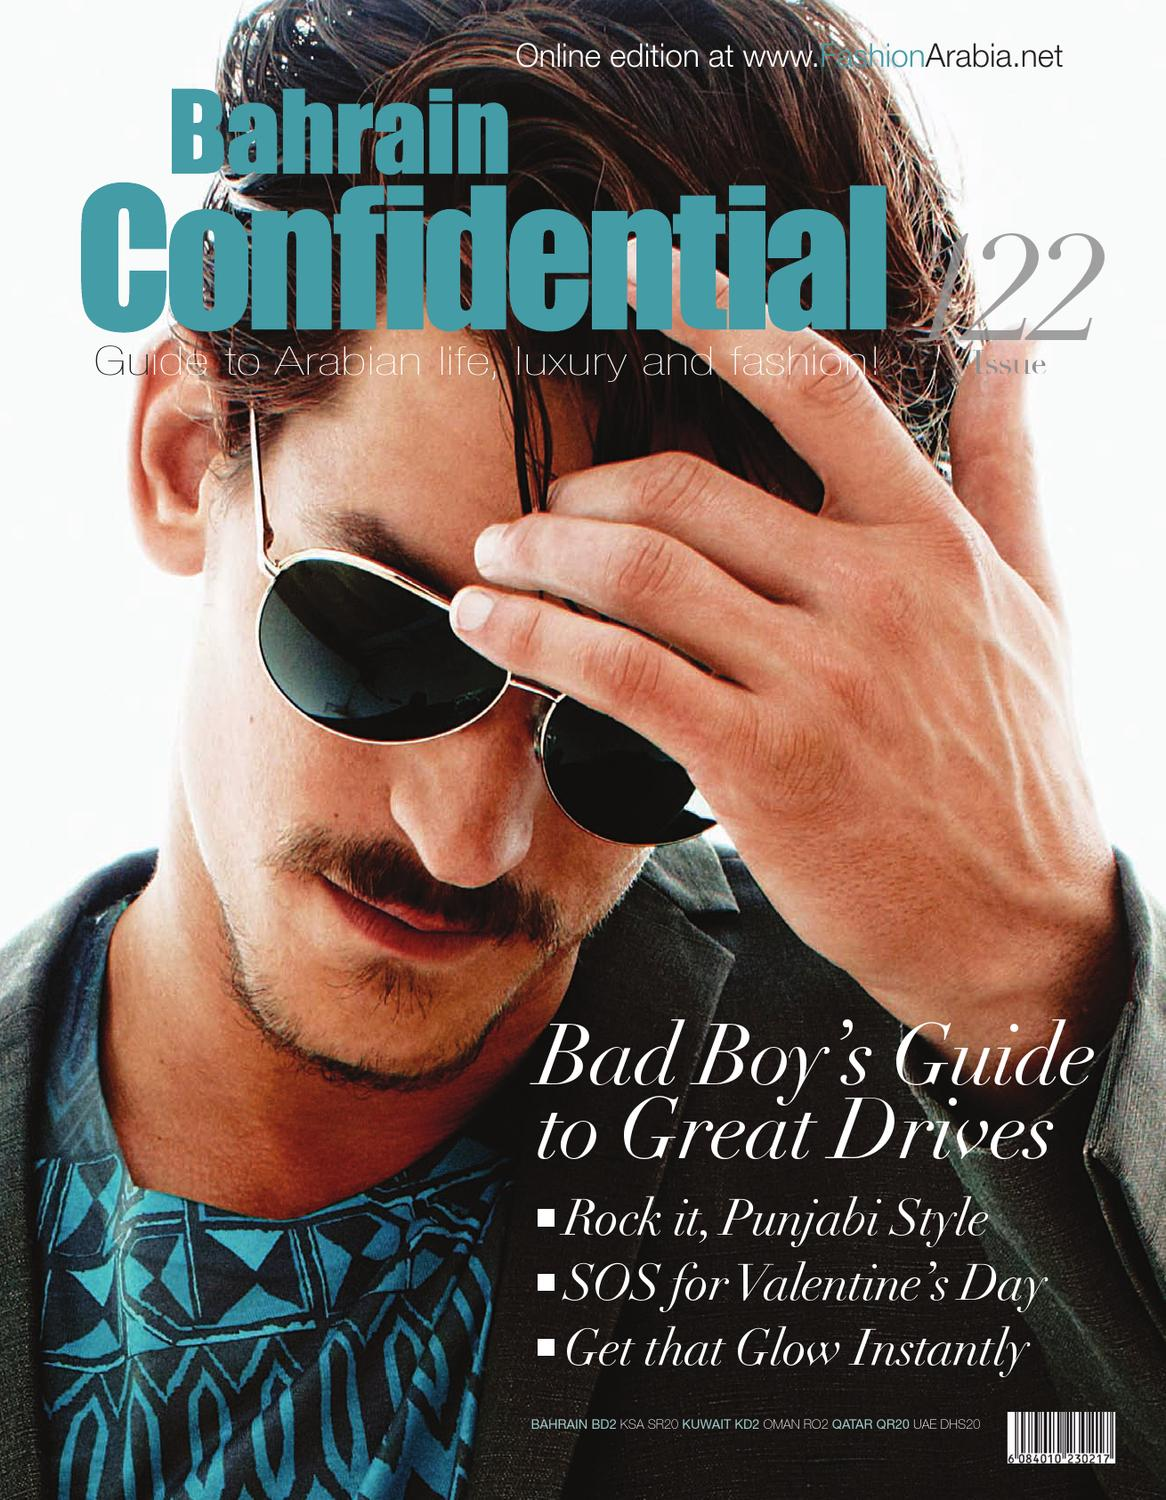 cdf2b4057318 Bahrain Confidential February 2013 by Arabian Magazines - issuu